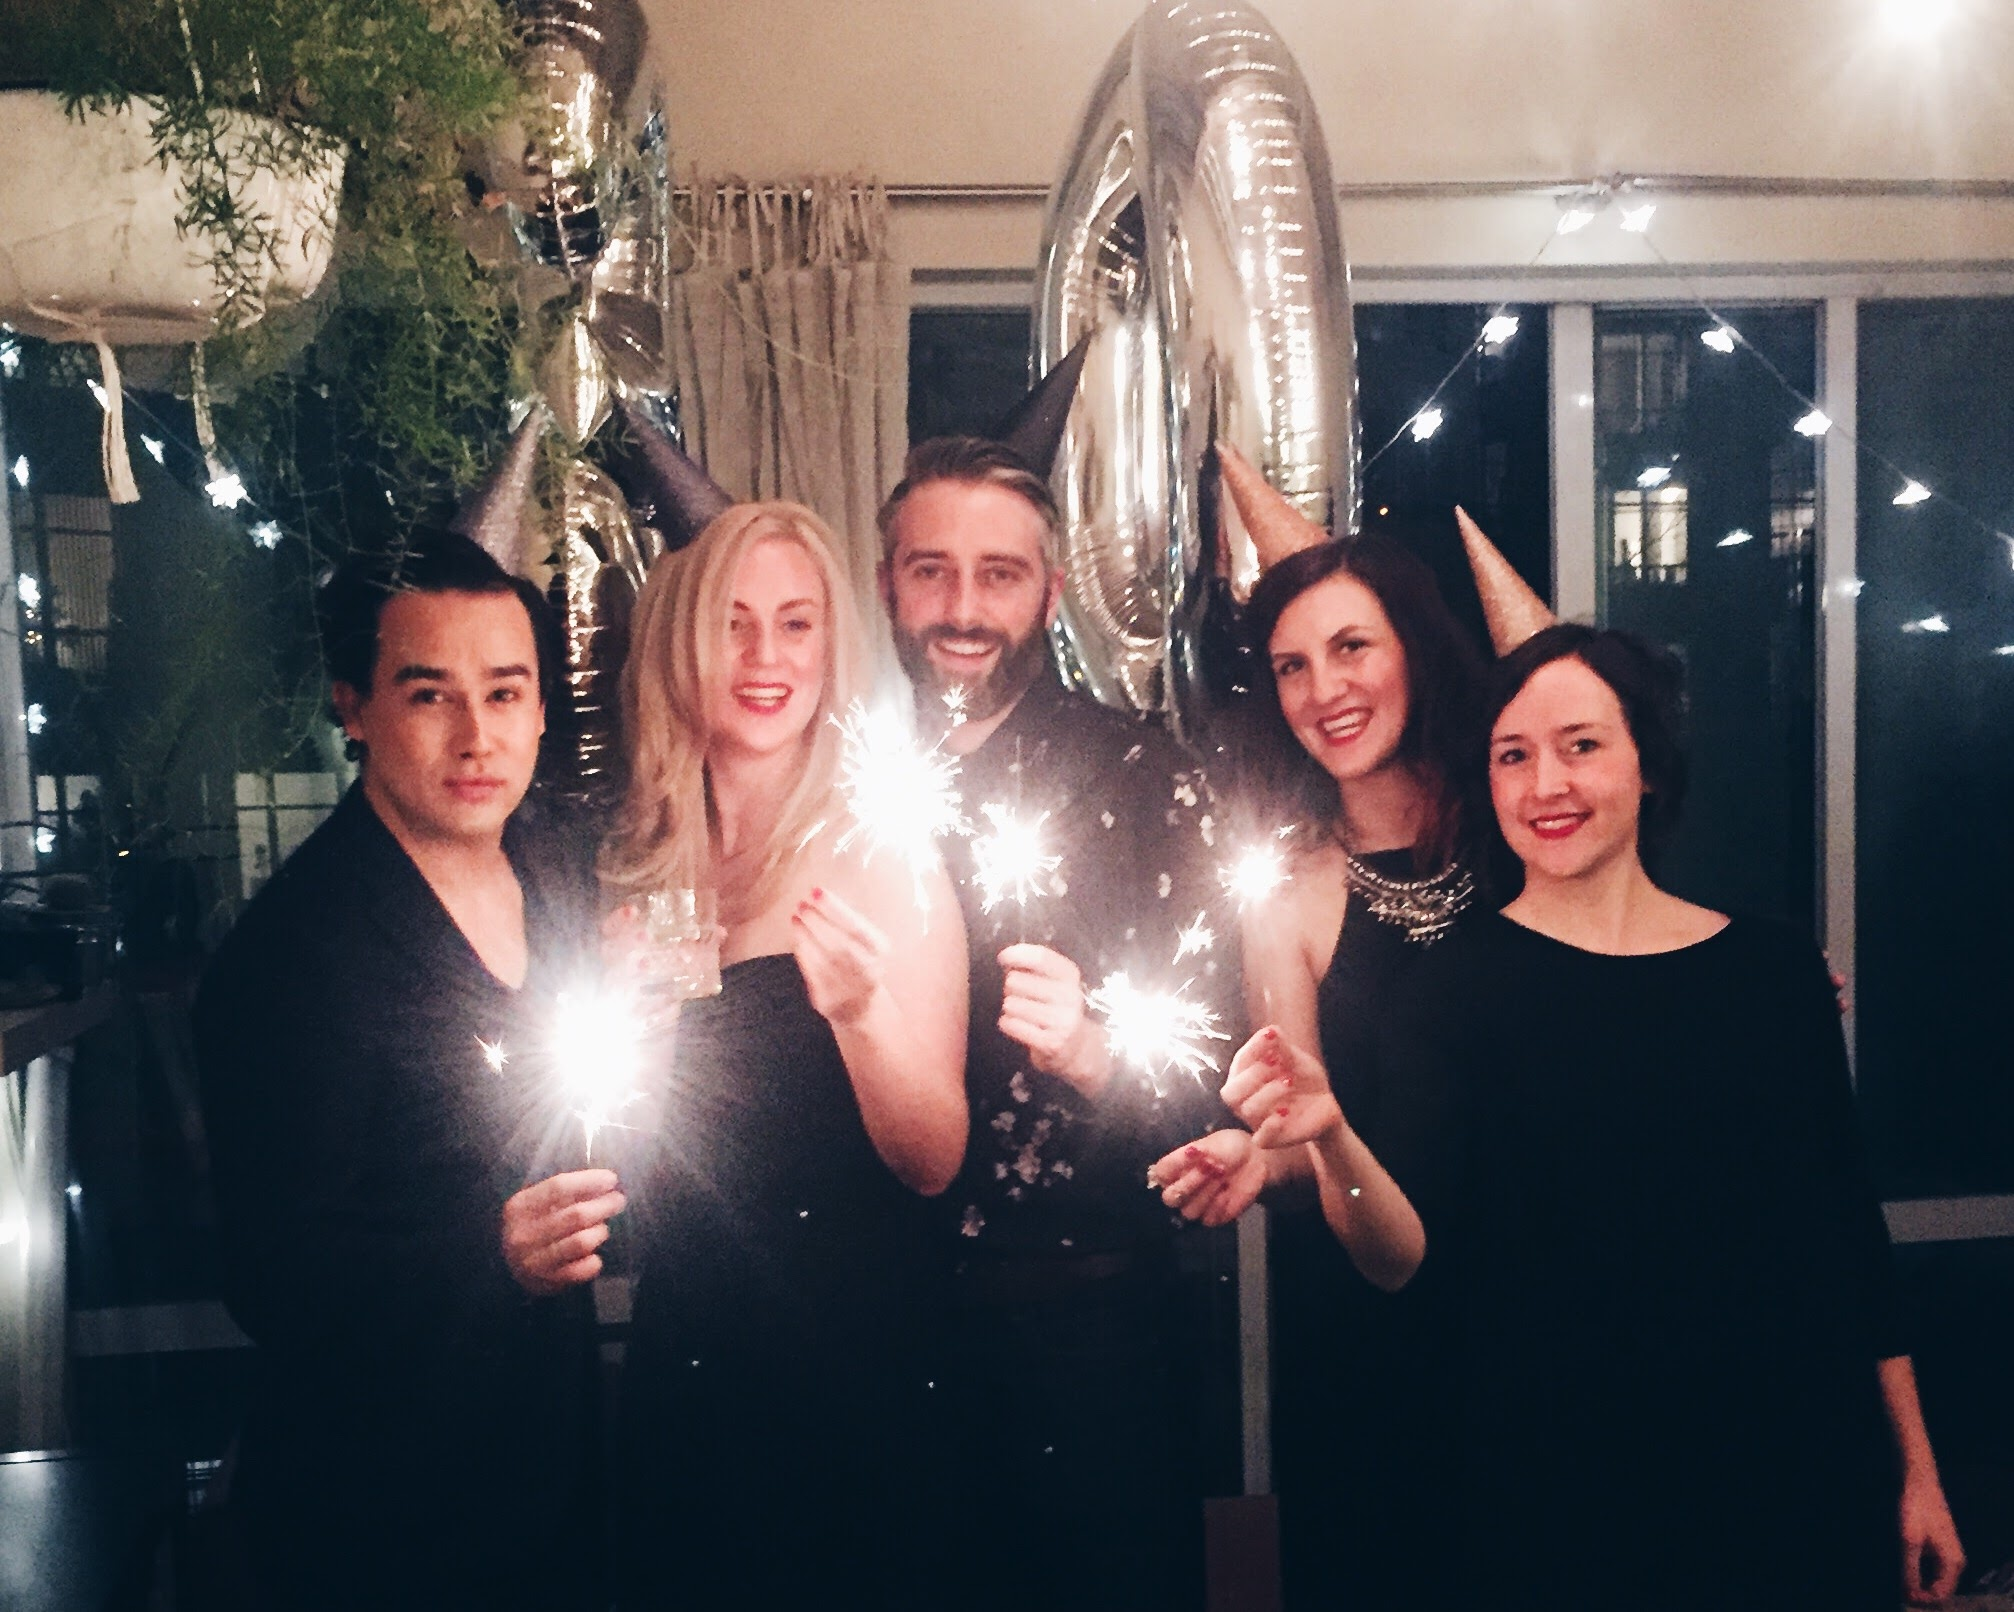 DIY metallic ombre glitter party hats for a classy 30th birthday + balloons + sparklers